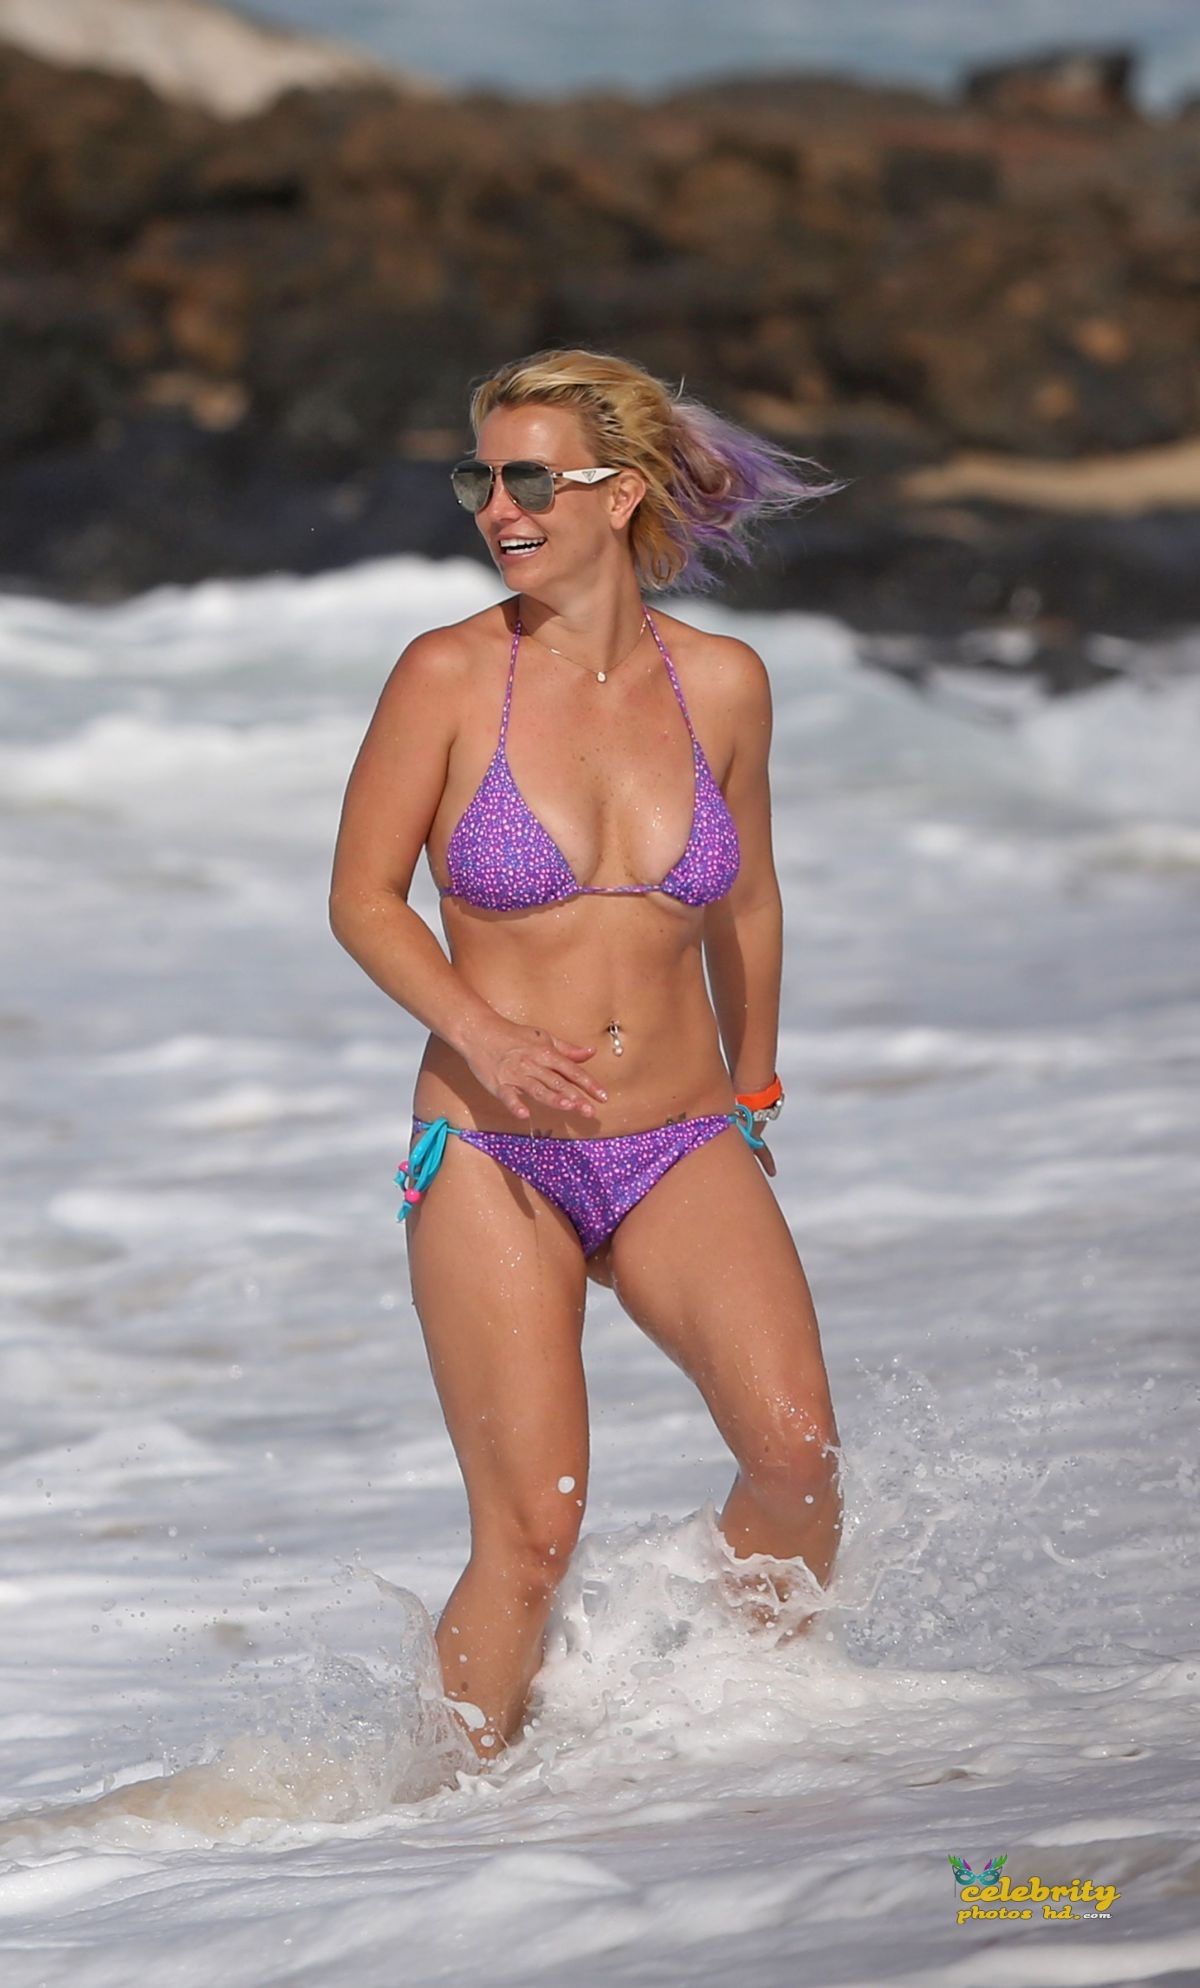 britney-spears-in-bikini-at-a-beach-in-hawaii-07-23-2015_8